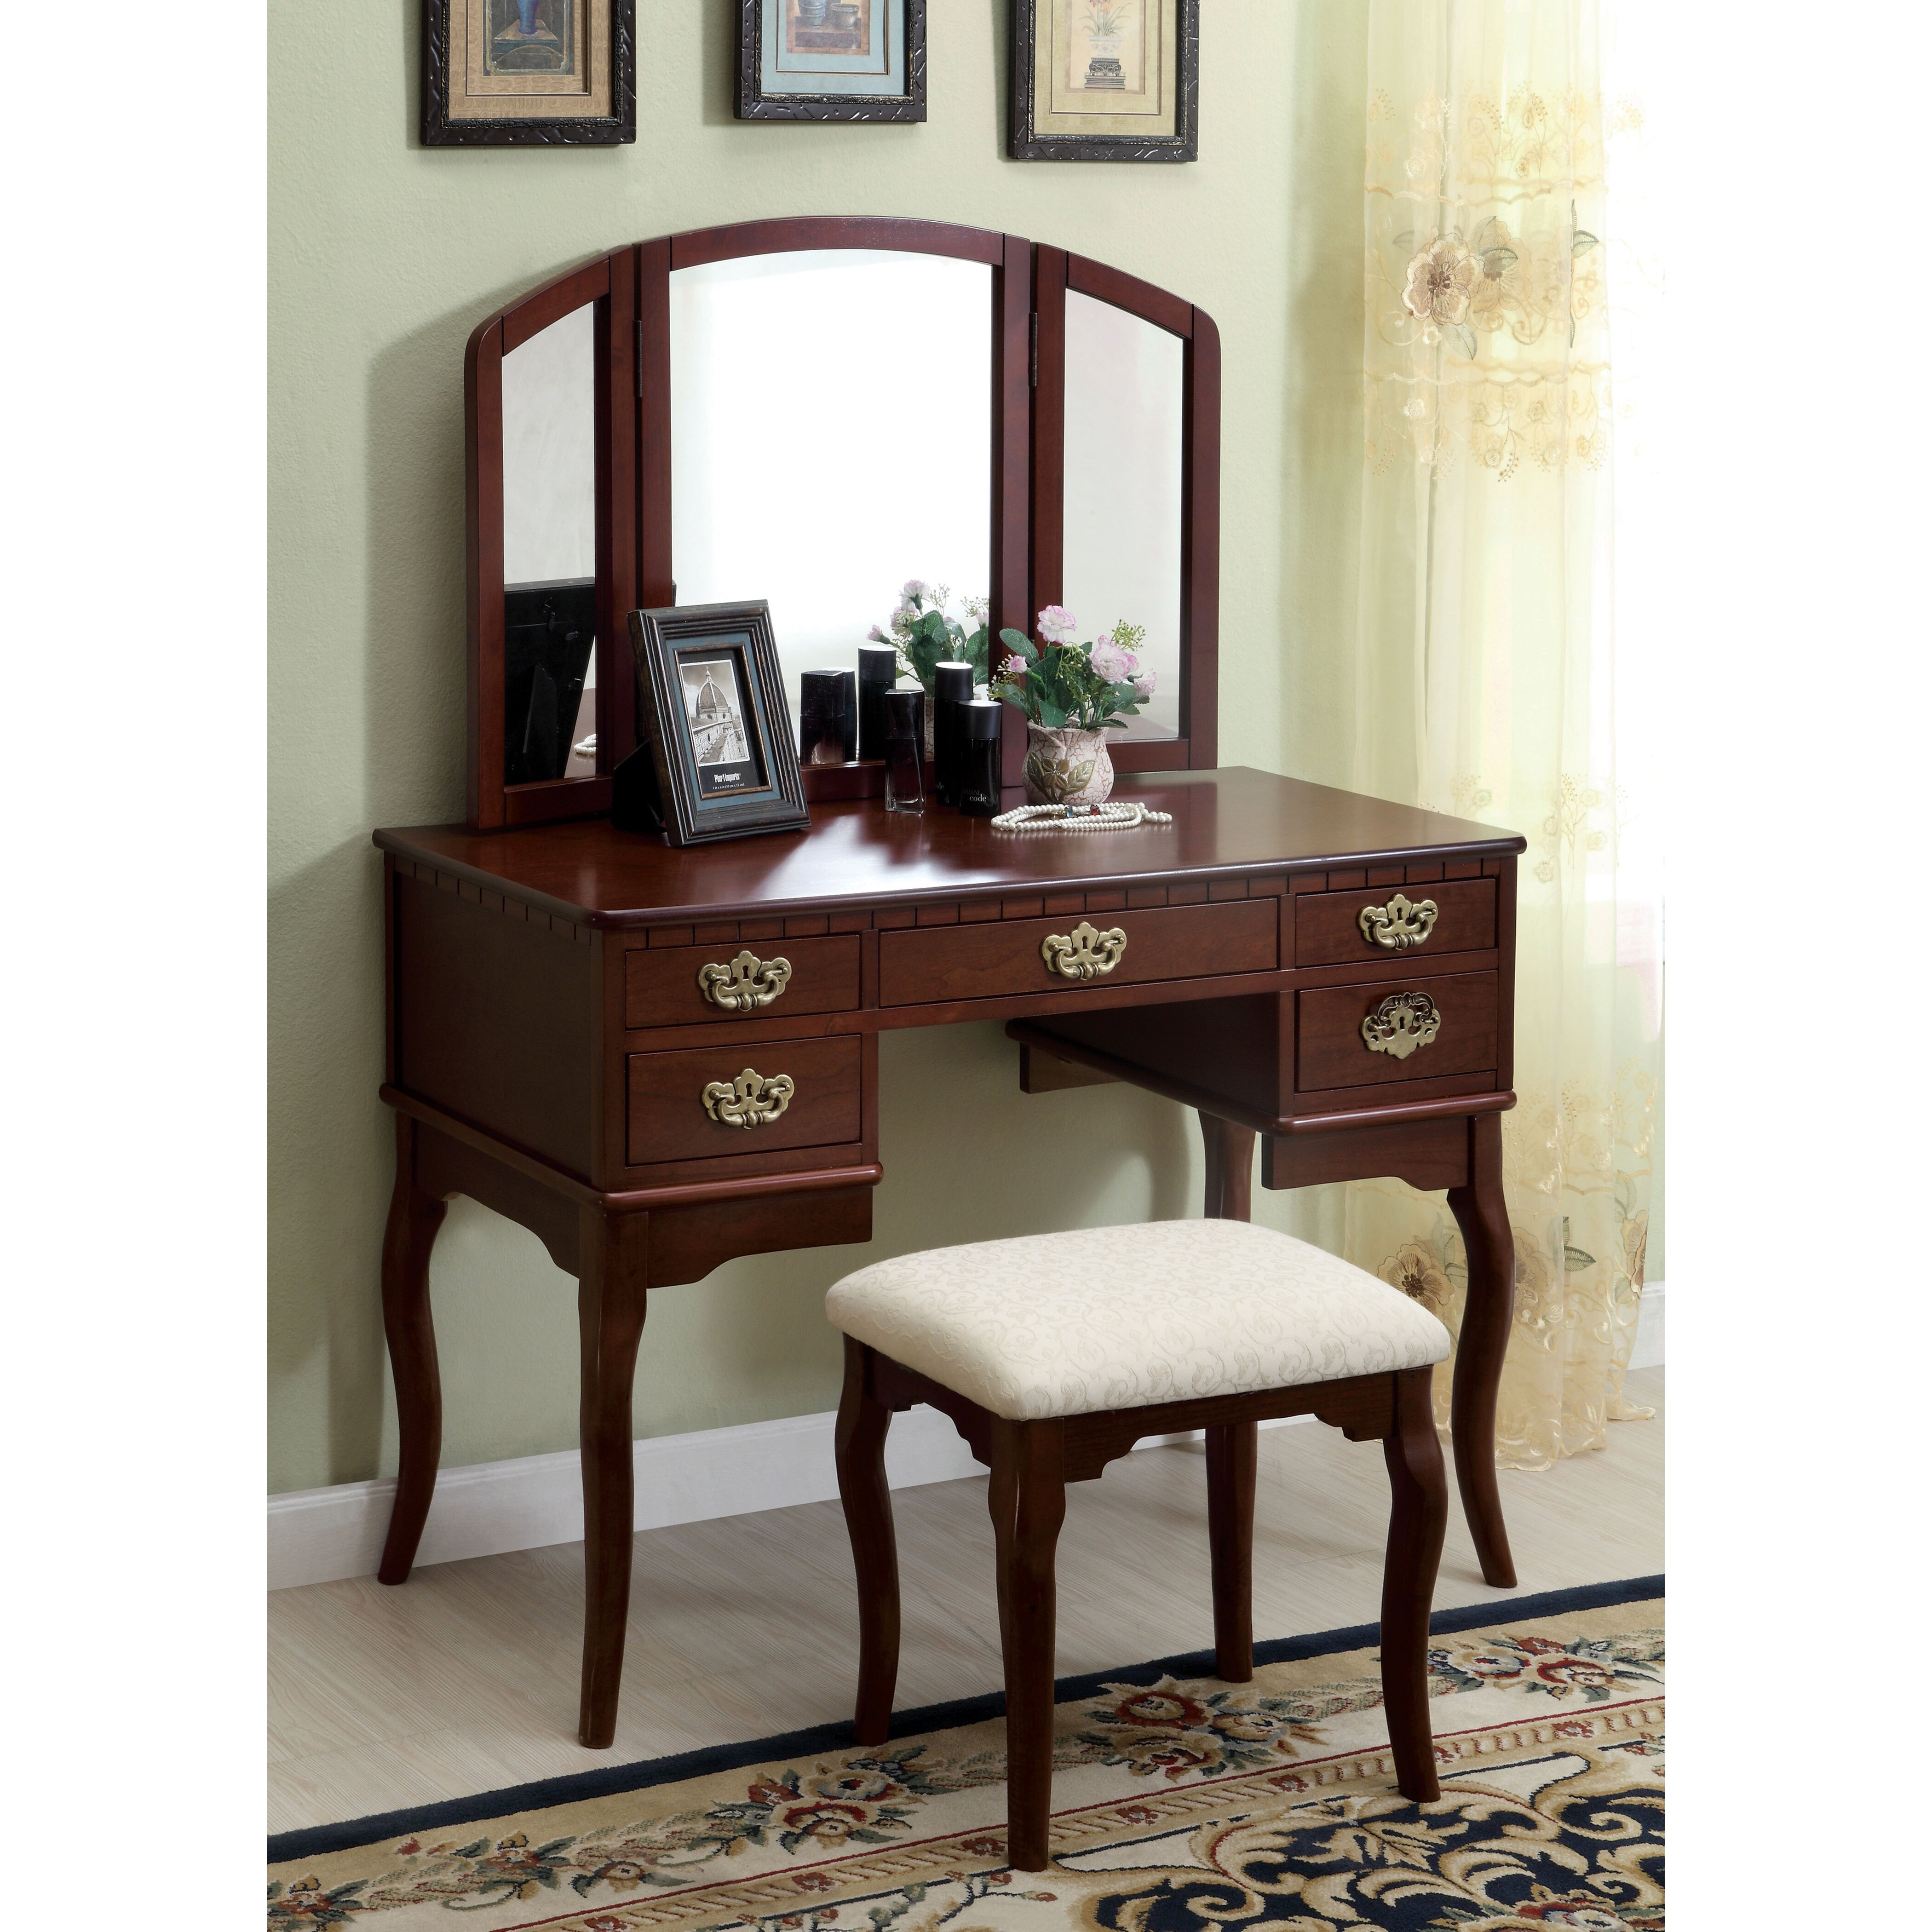 Darby home co falconer 3 piece vanity and stool set for Bedroom furniture vanity